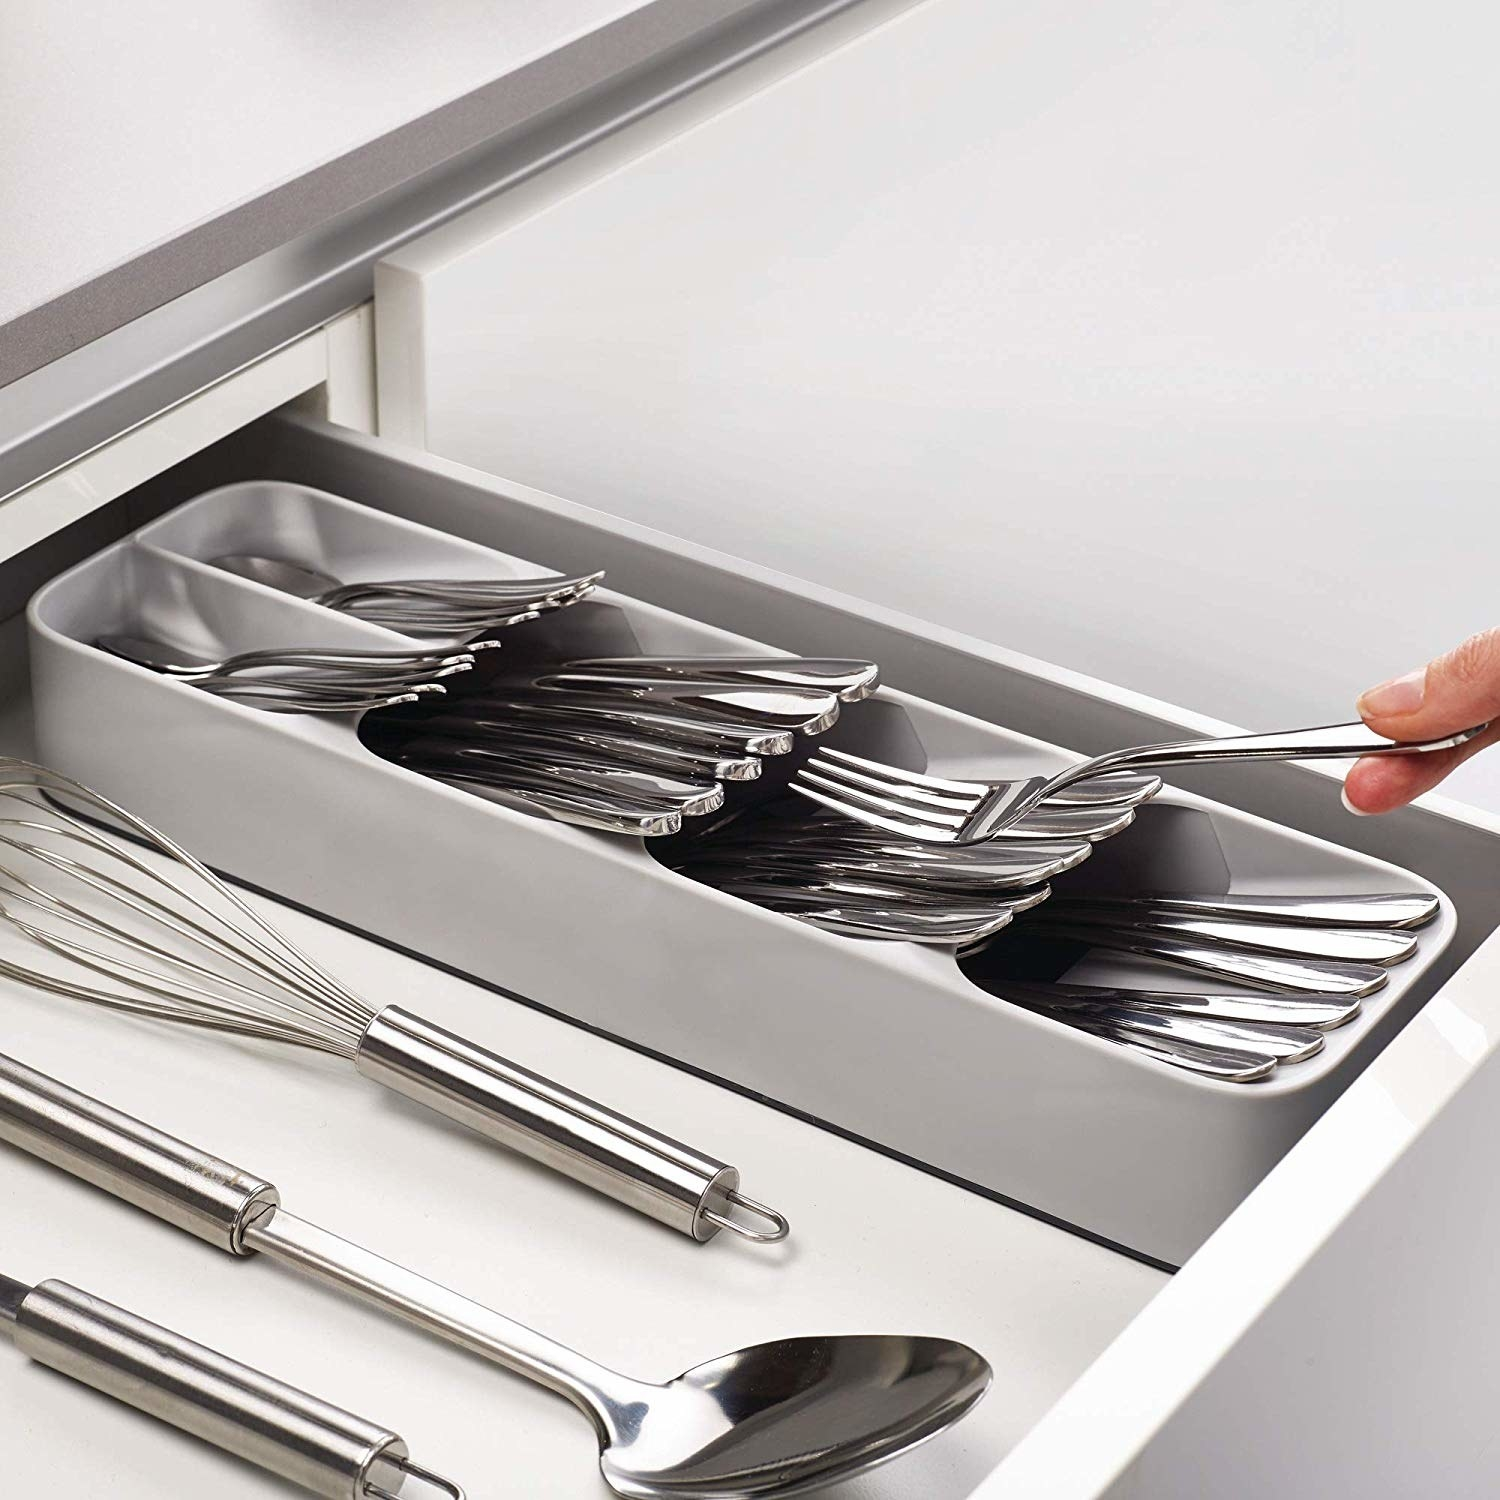 The organizer in grey with silverware organized at an angle inside